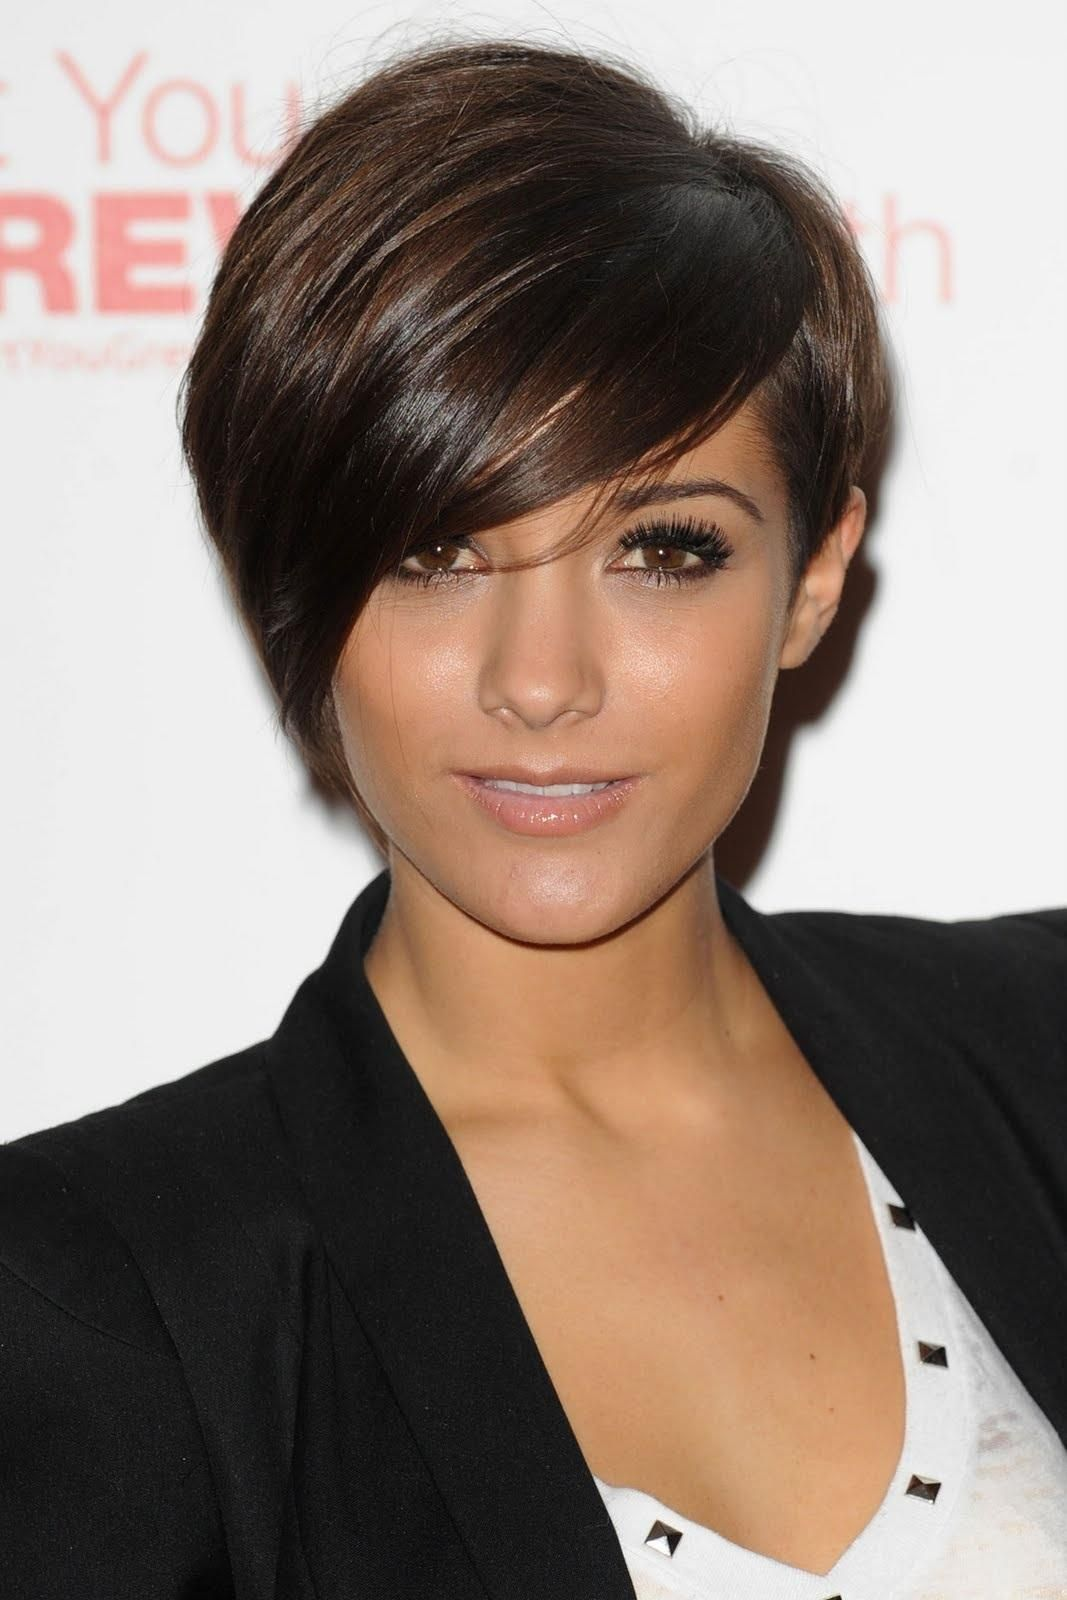 Frankie Sandford's asymmetric pixie is edgy & fabulous. Next cut ith dark red color?!